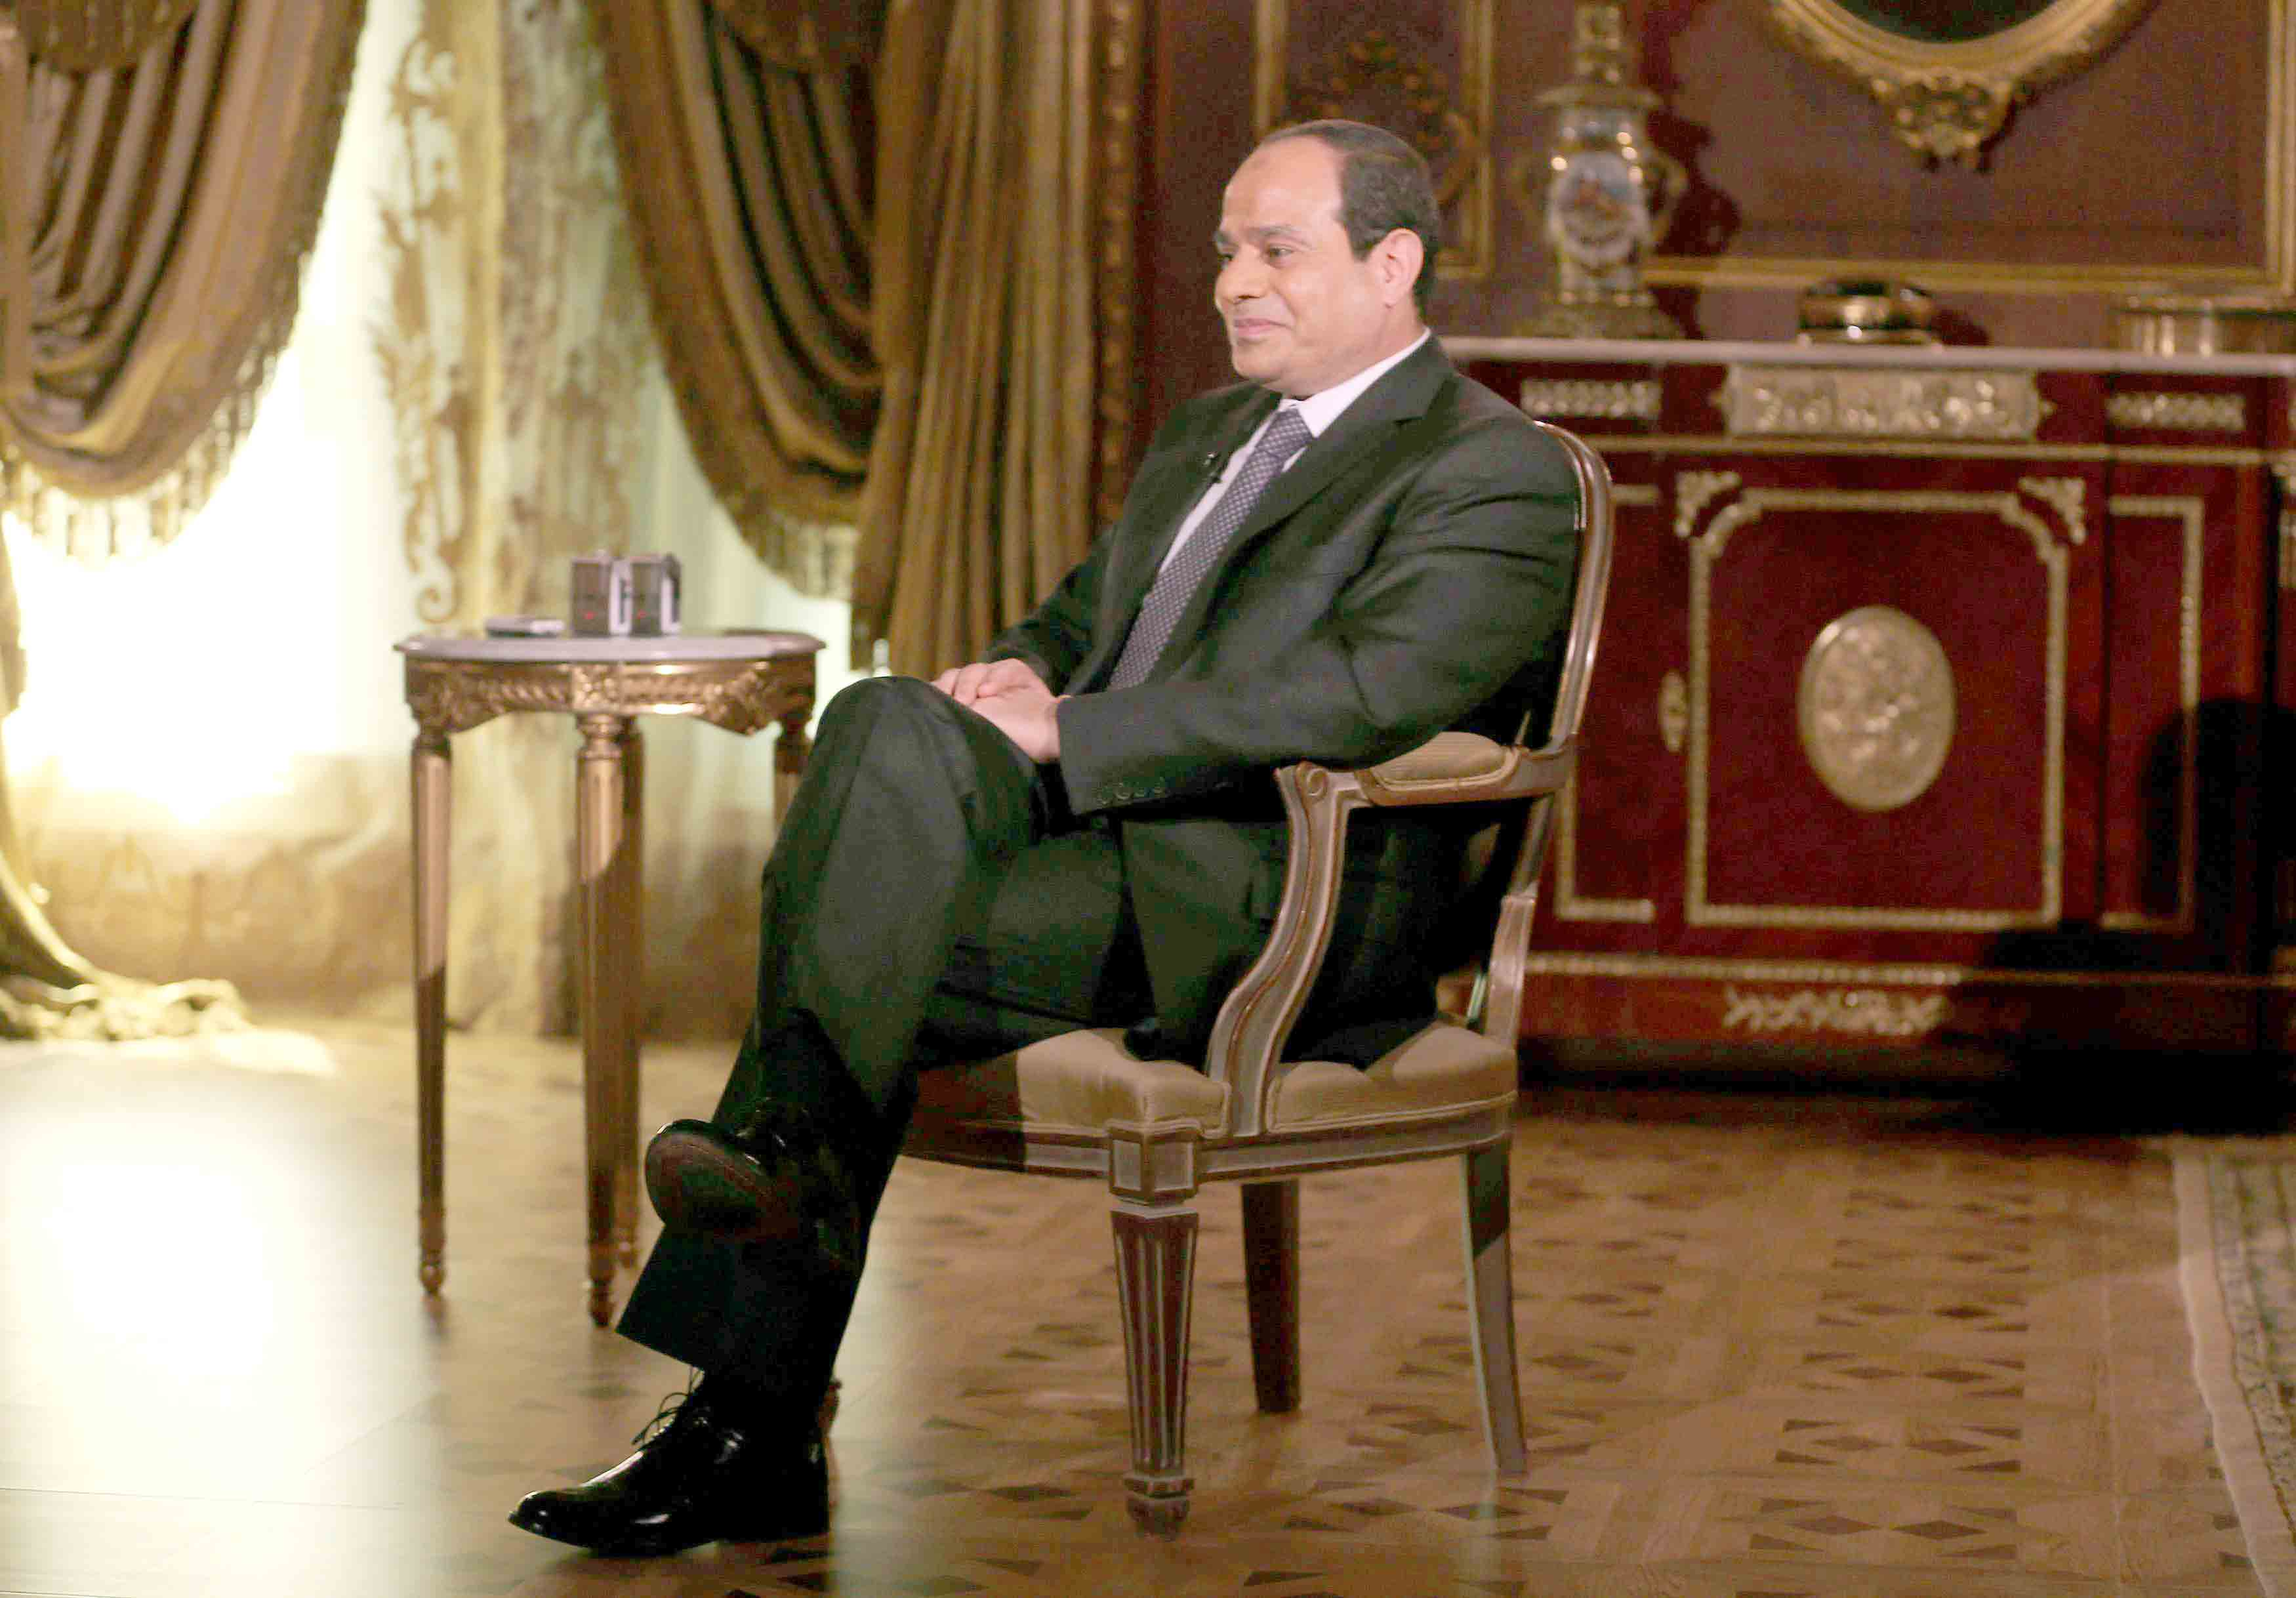 Egyptian President Abdel Fattah al-Sisi sits during an interview in Cairo. (Reuters)